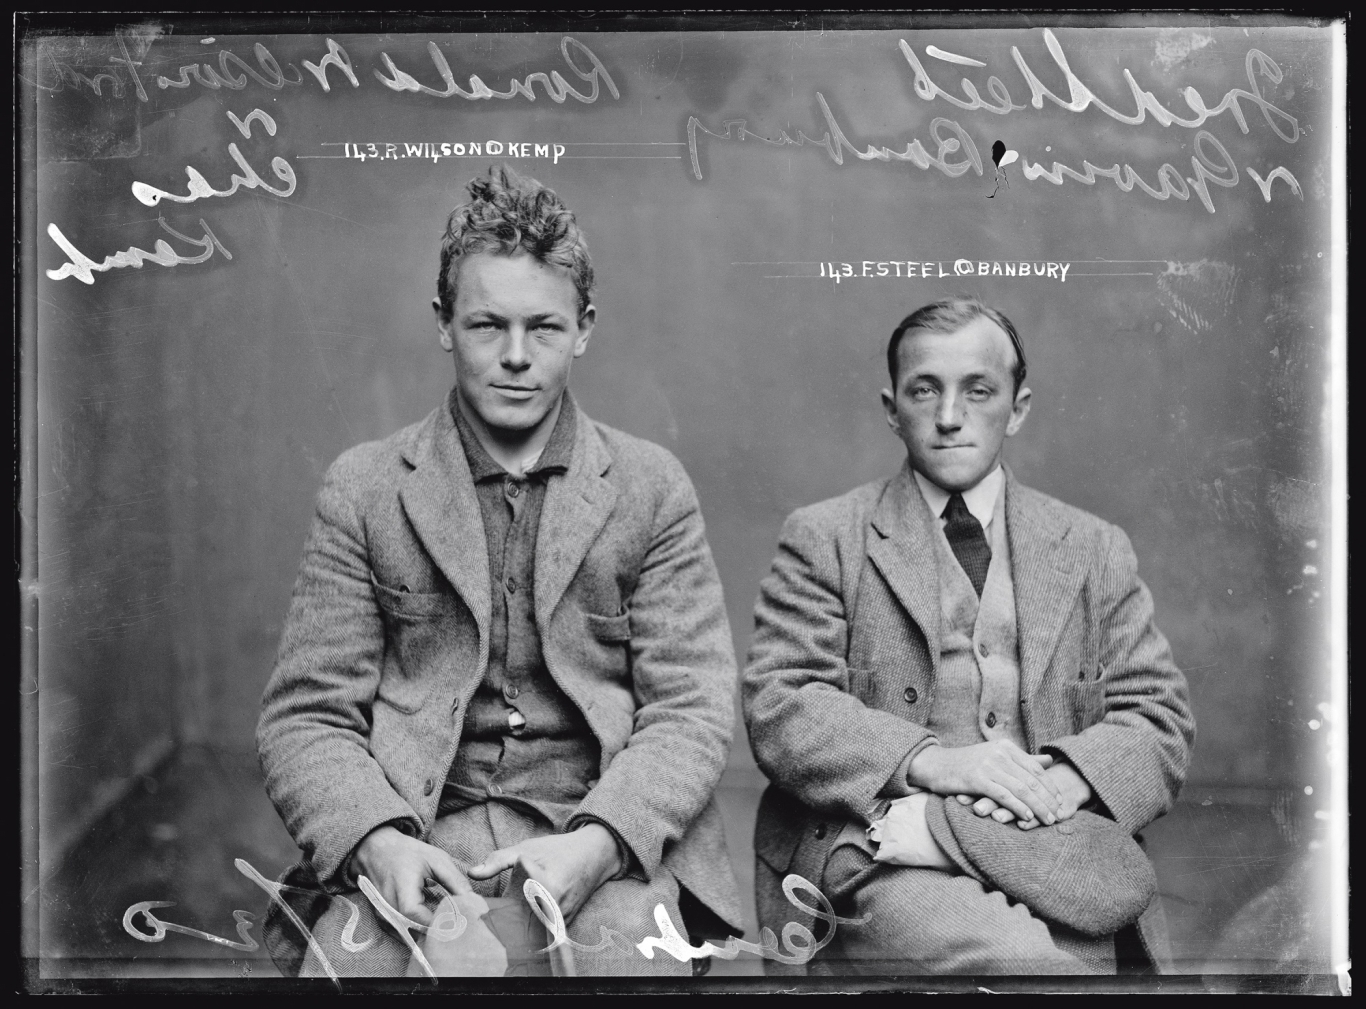 Black and white mugshot of two seated men.